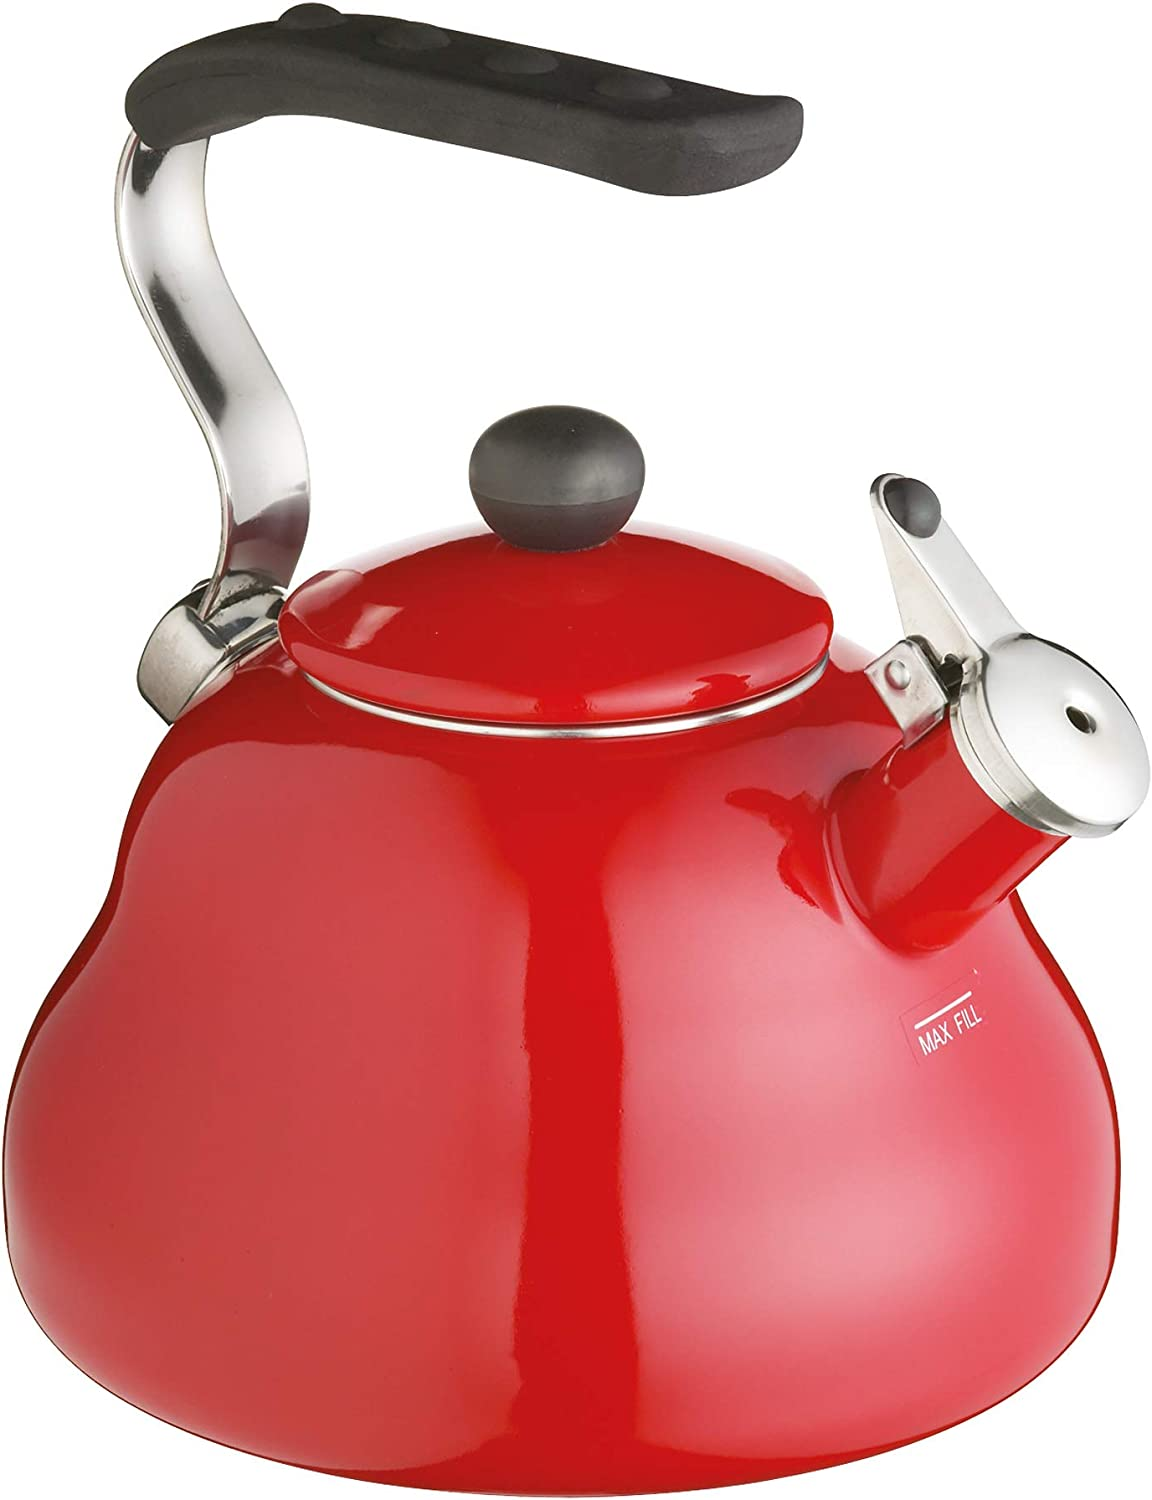 -44% Kitchen Craft Le'Xpress Bollitore a fischio 2 l